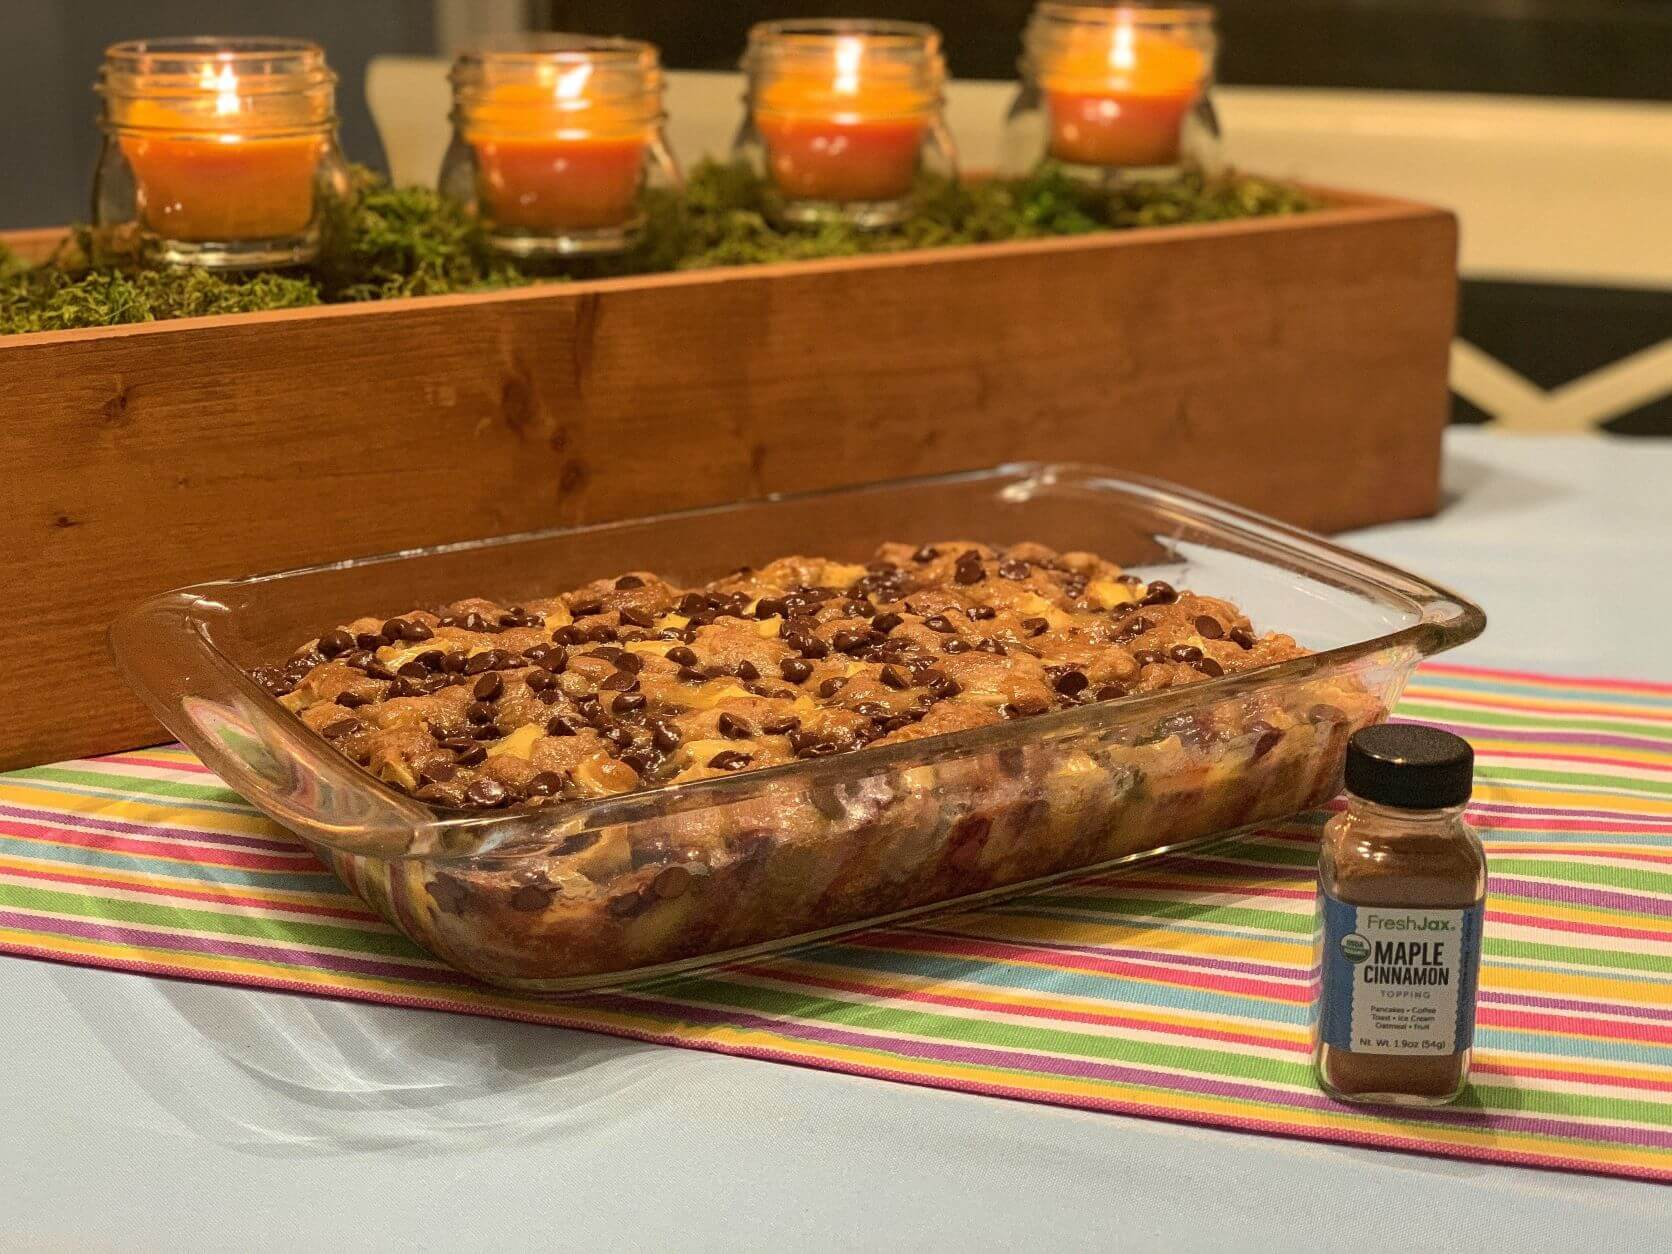 Chocolate chip apple cake in glass dish with a sampler bottle of FreshJax maple cinnamon topping. Orange candles in background.